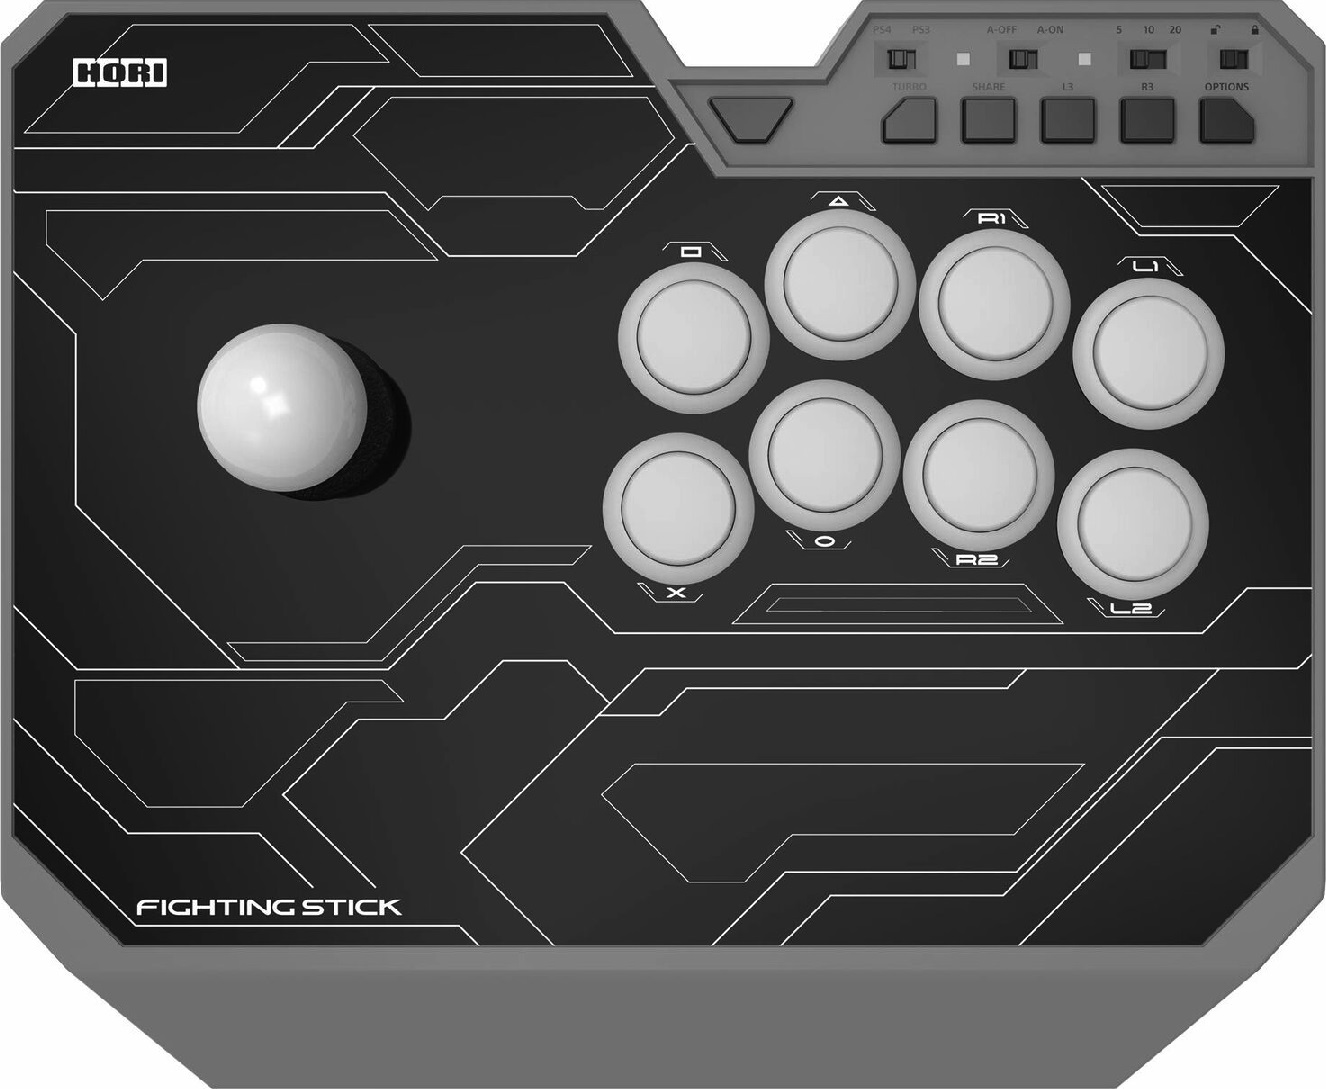 Read more about the article Hori Fighting Stick Review